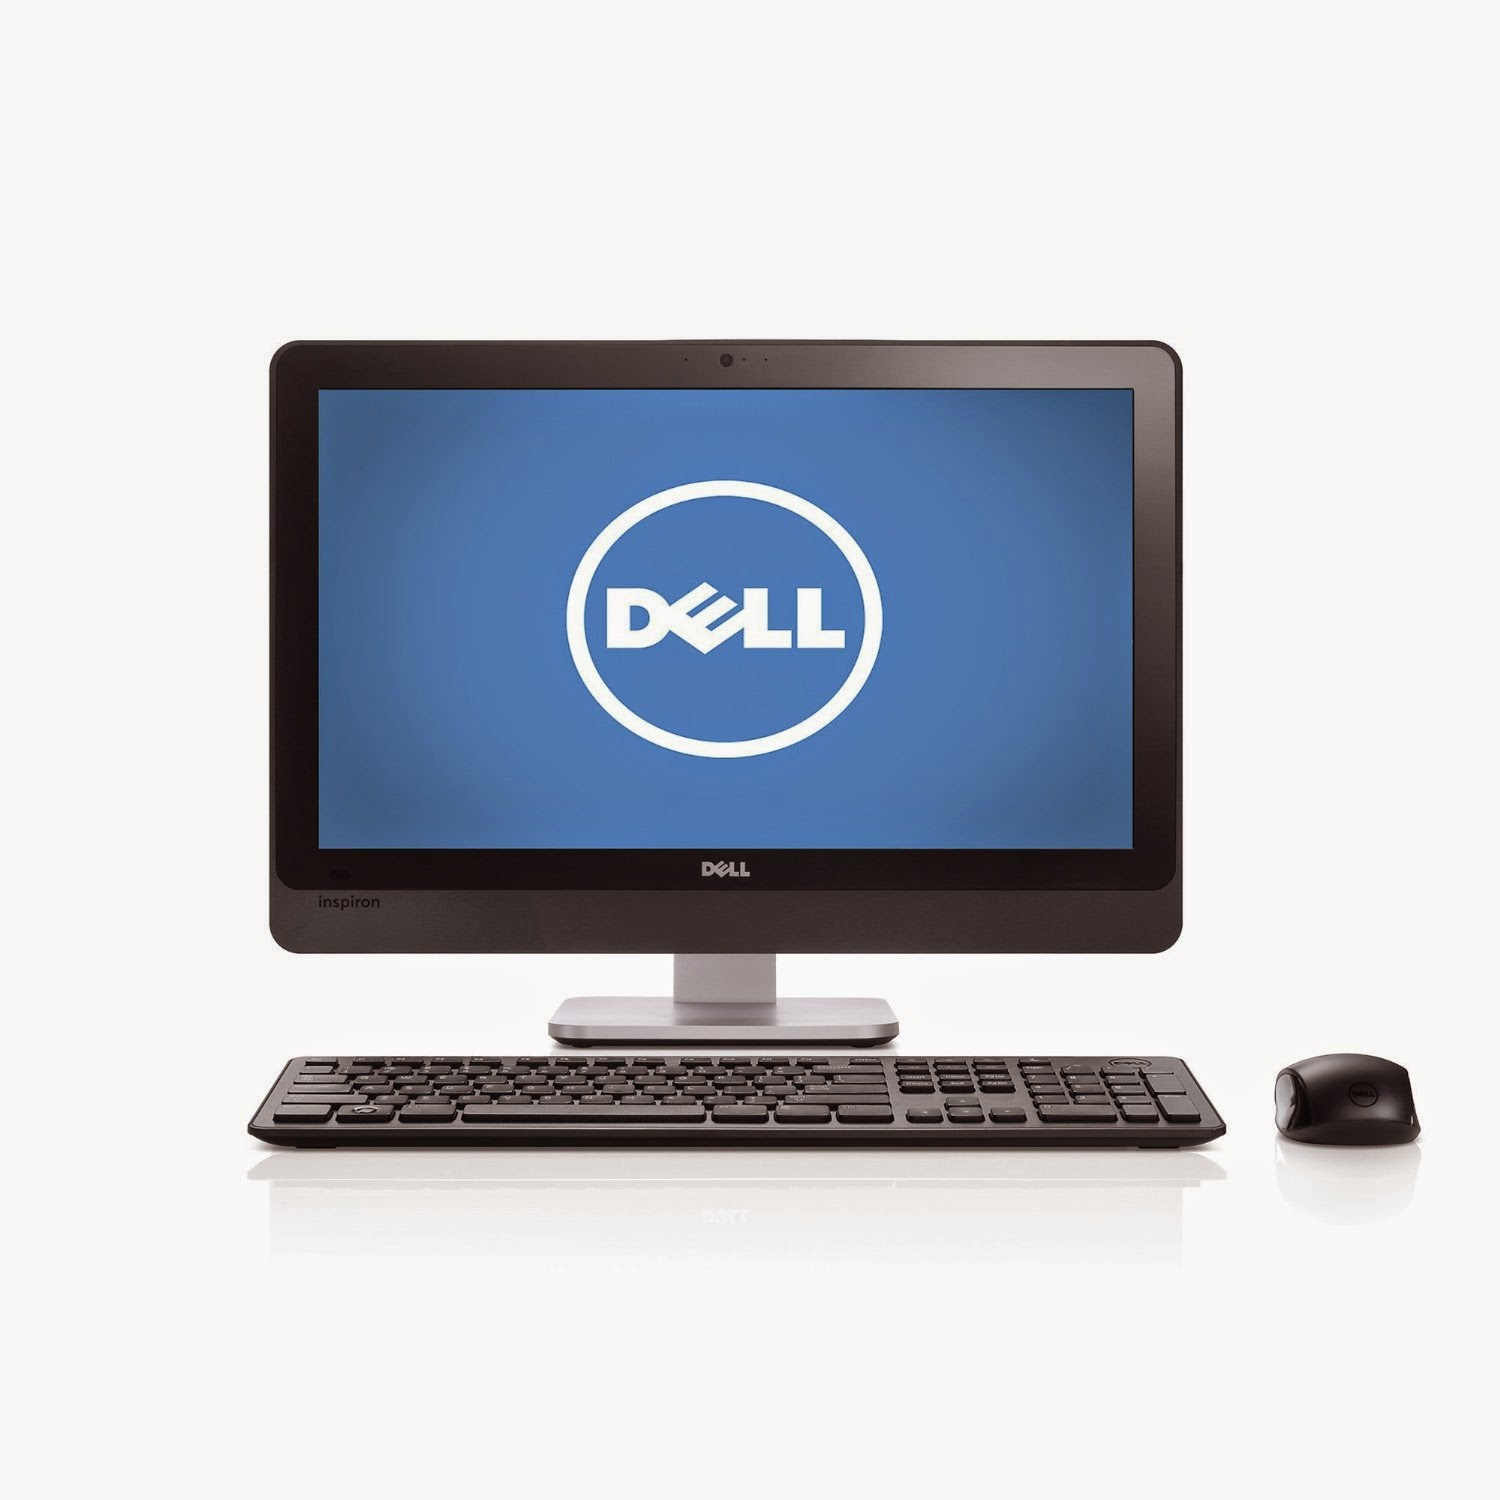 Dell Inspiron 23-Inch Touchscreen All-In-One Desktop